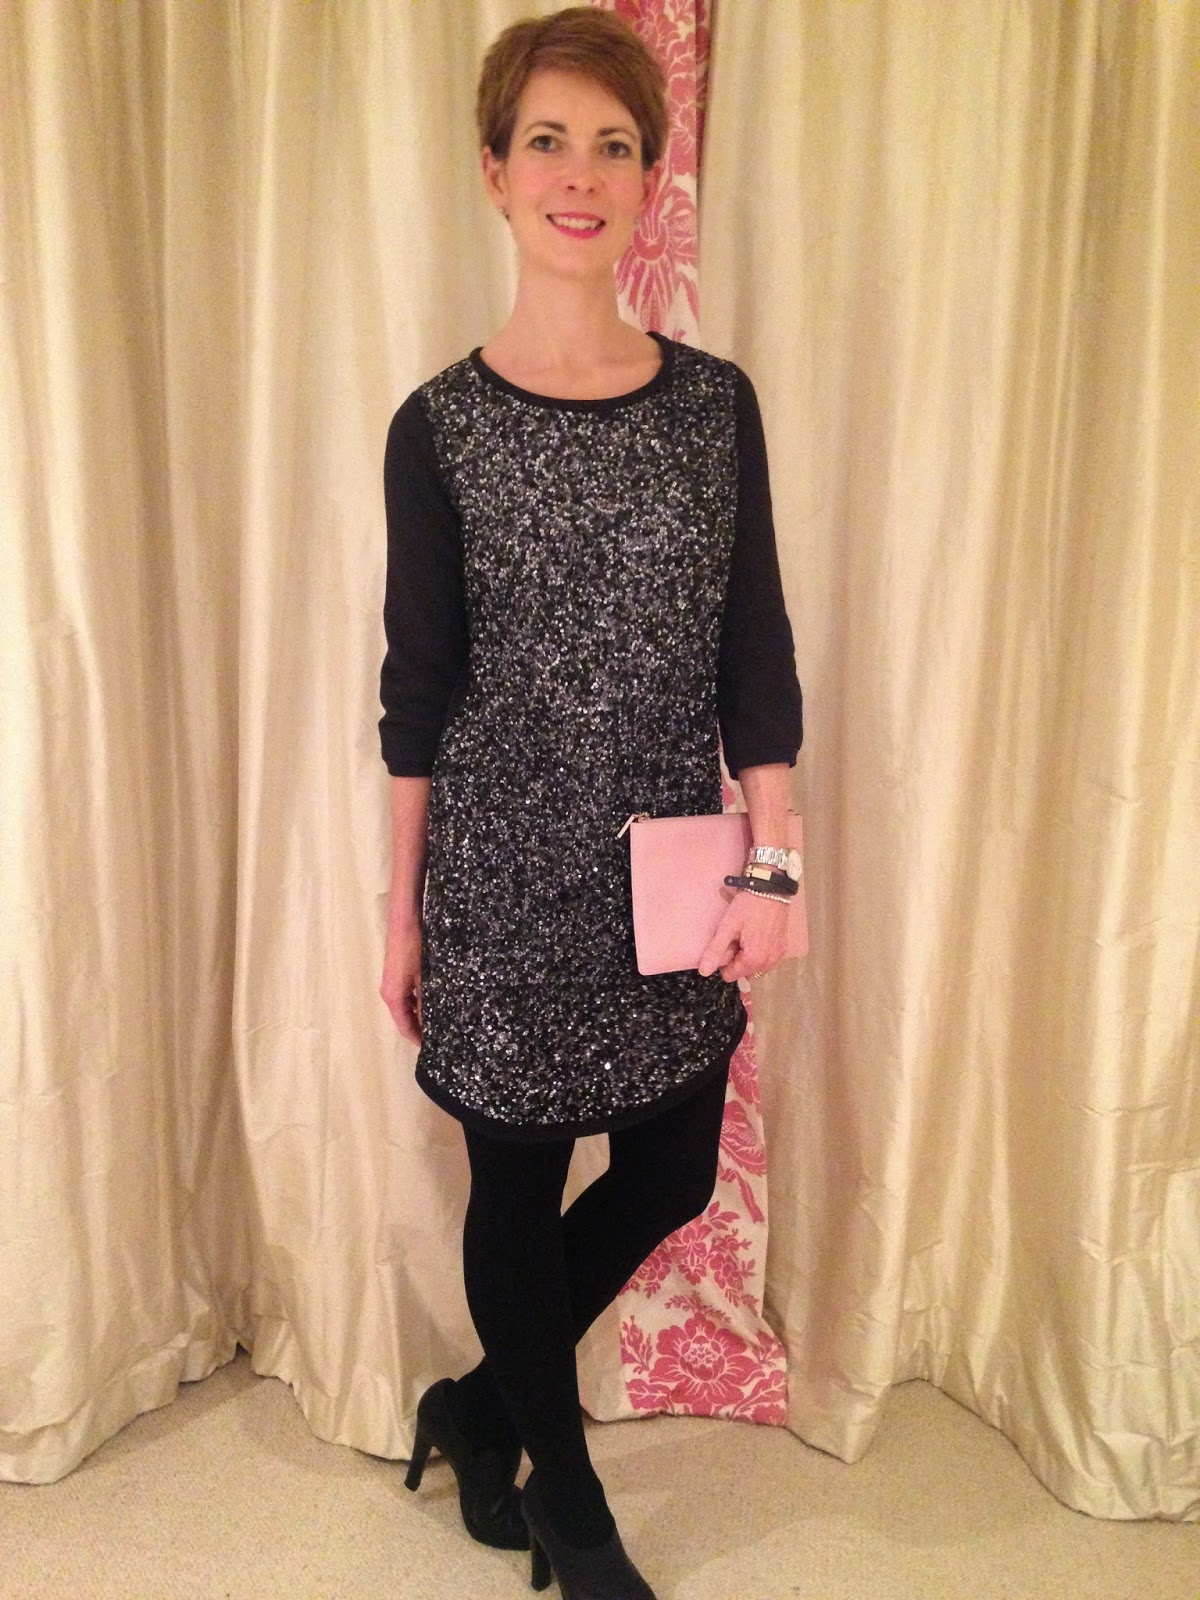 8ebcc657d820 The 12 outfits of Christmas, day 5 - sparkly sweatshirt dress ...